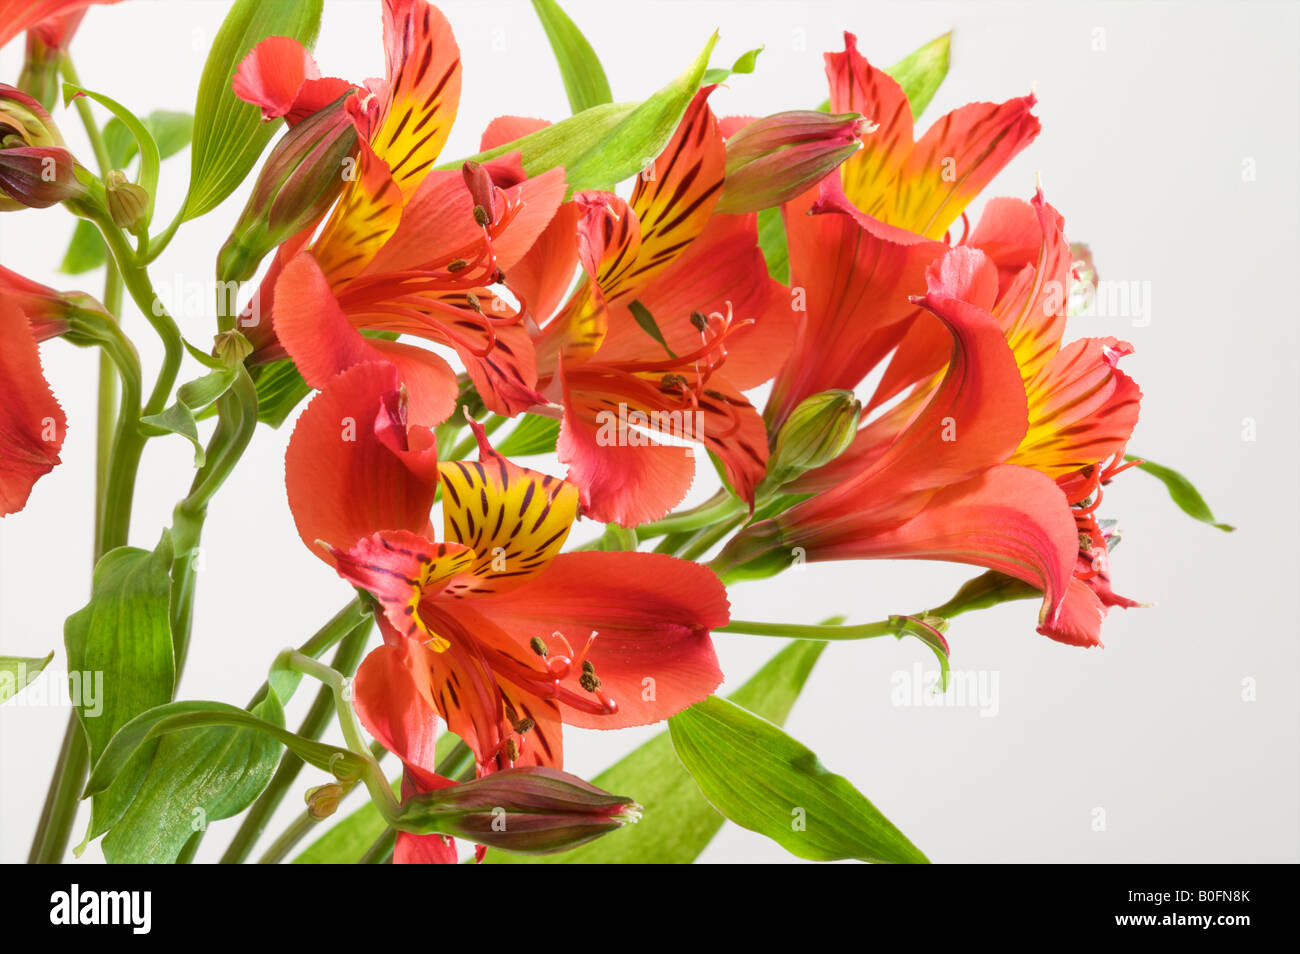 Alstroemeria aurea or Peruvian Lily as a bunch of flowers in a vase flower close up Stock Photo